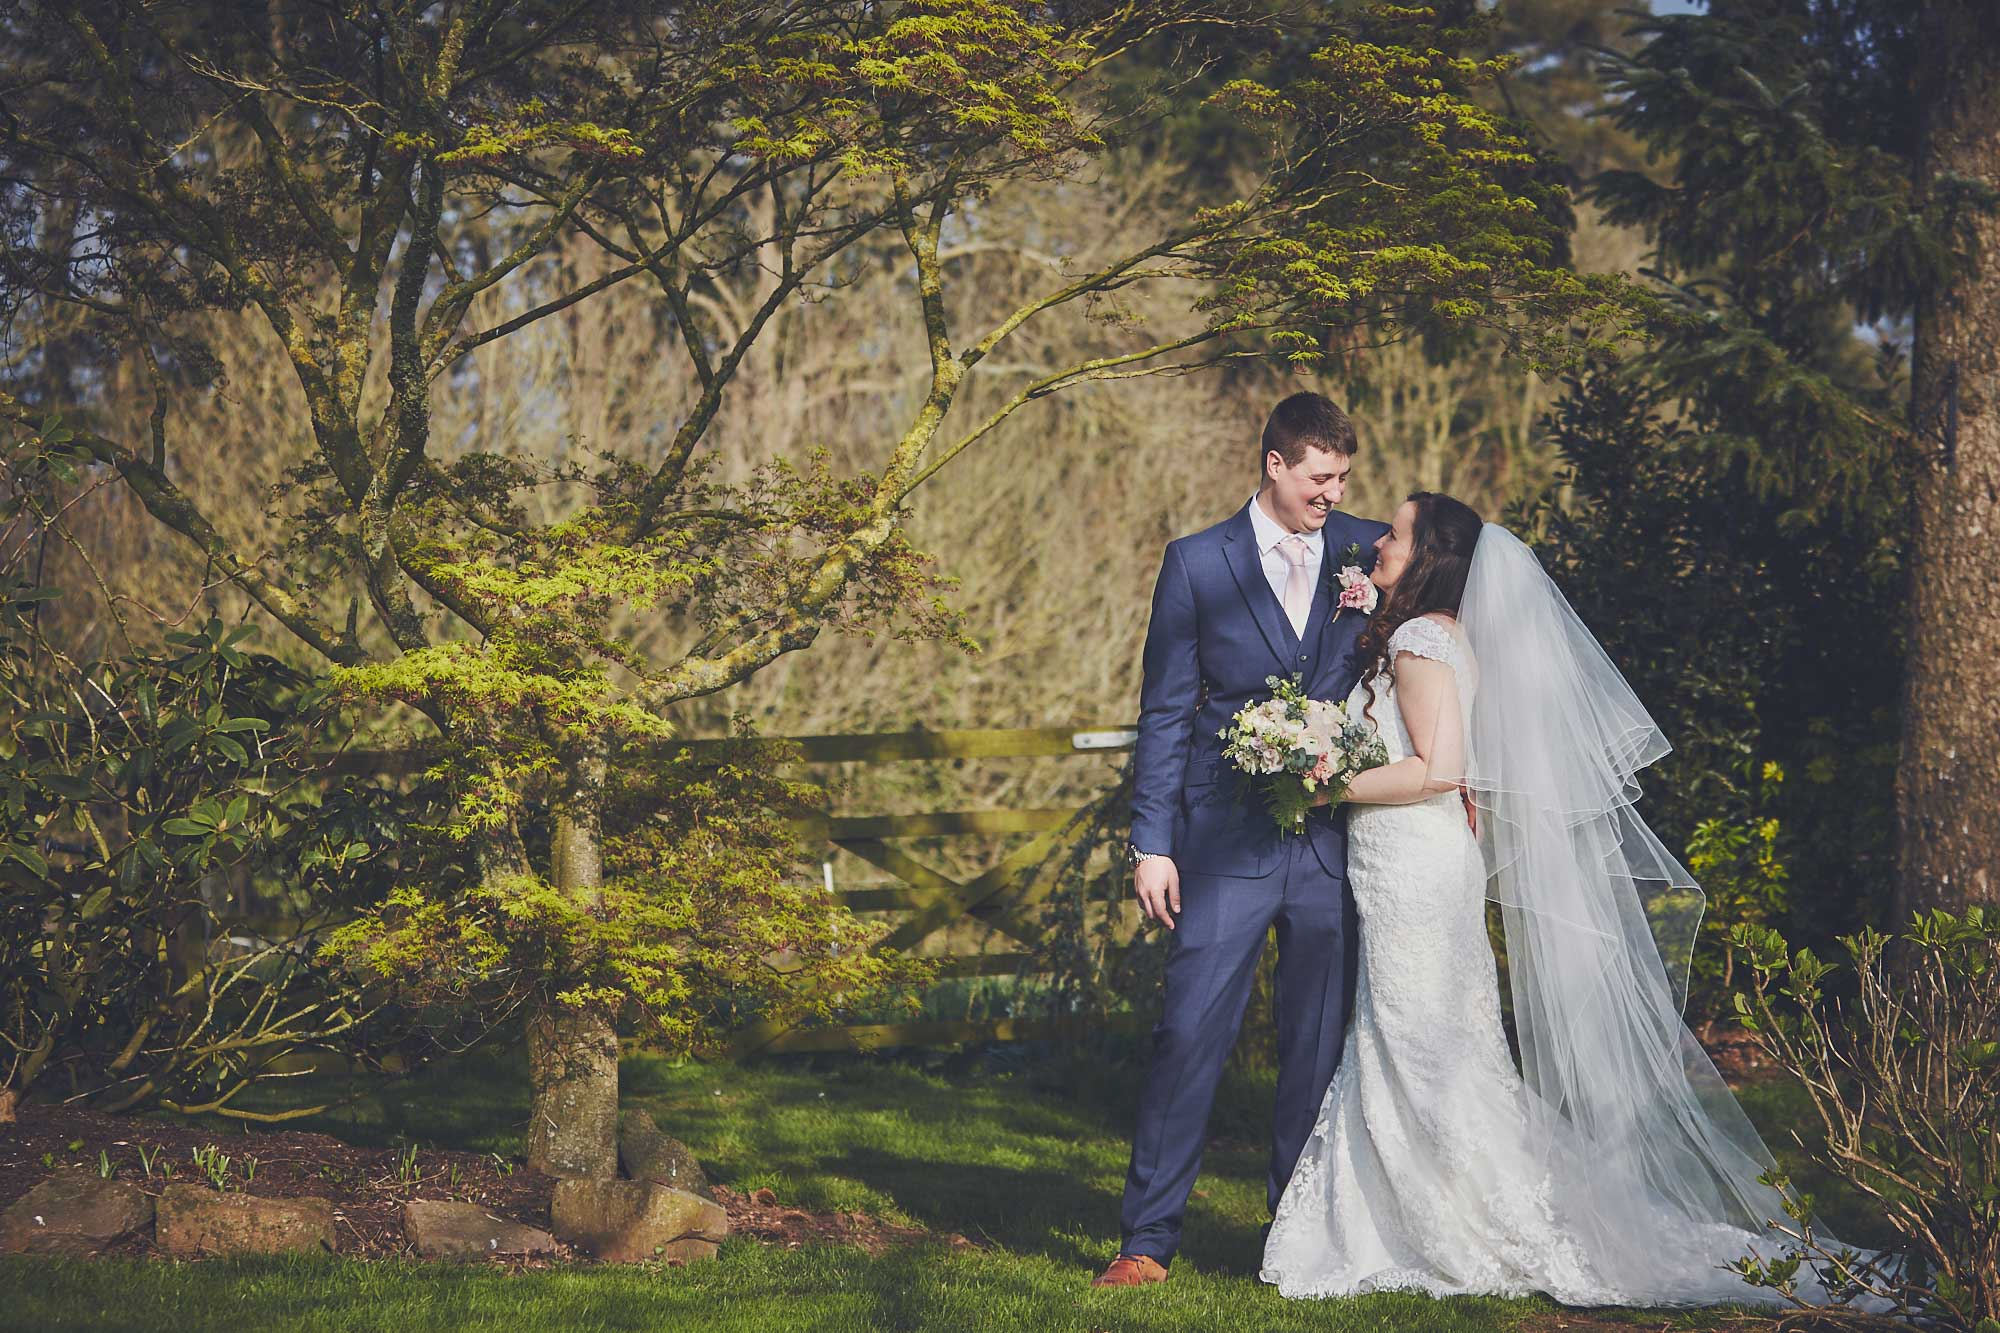 Bride and Groom smile and embrace under trees infront of wooden gate at Upton Barn Wedding venue